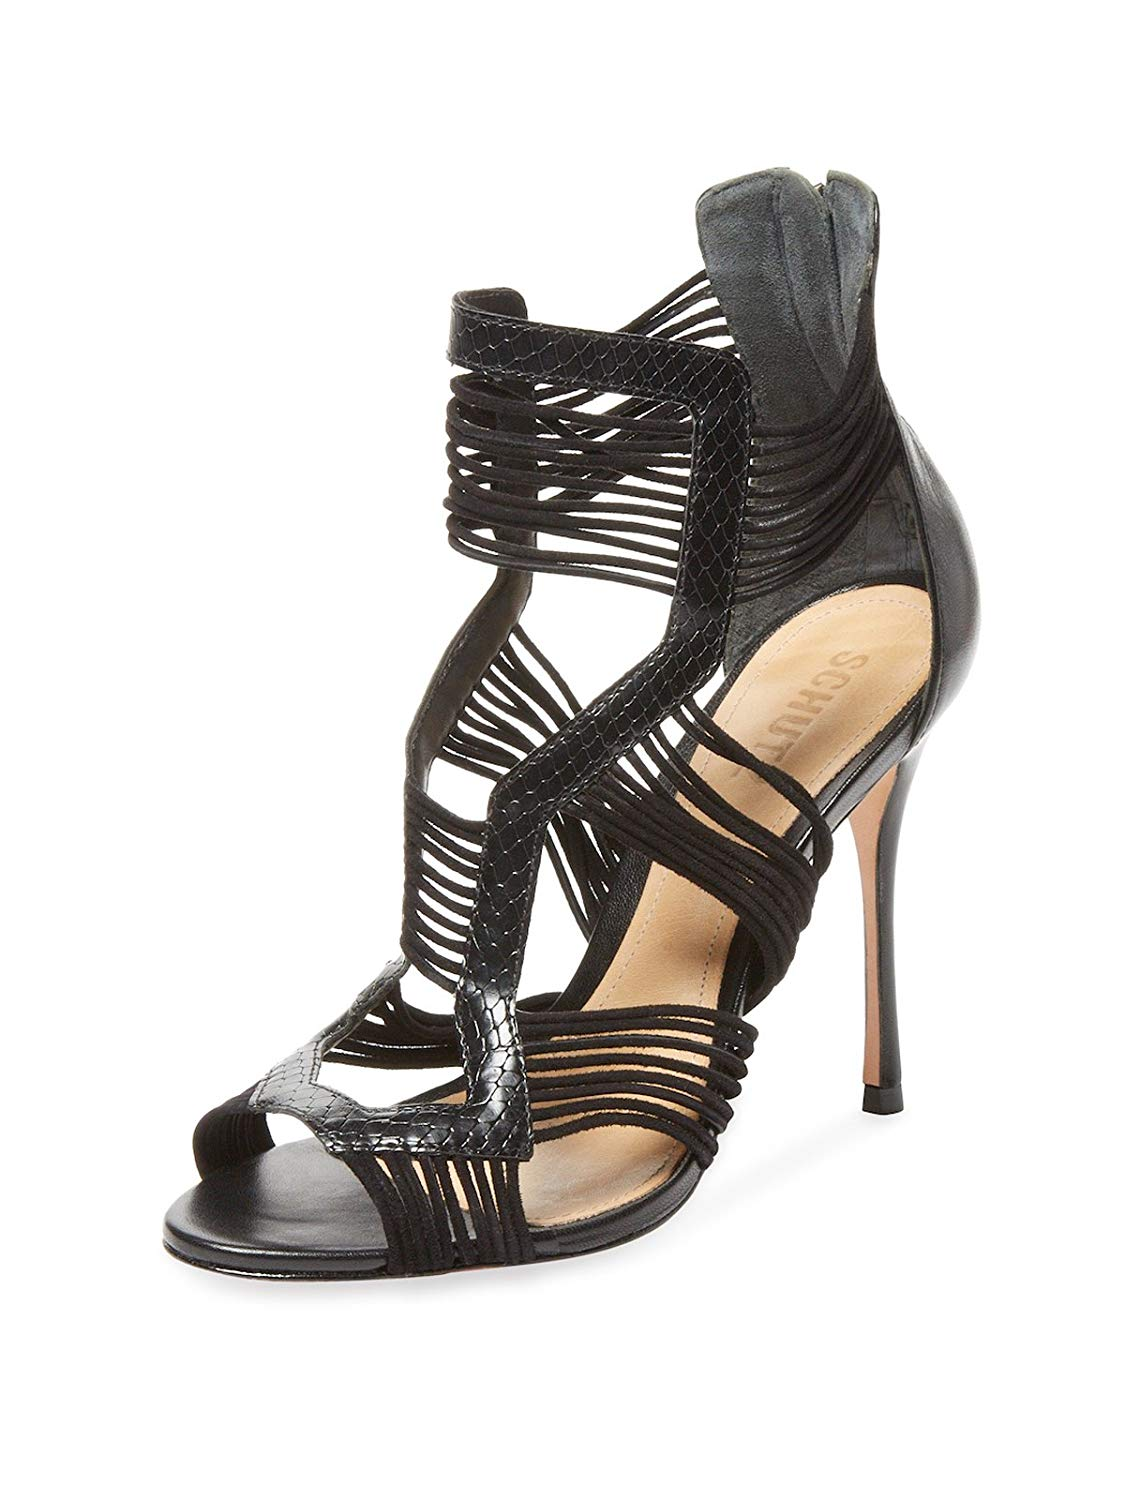 1eb4300a68 Get Quotations · SCHUTZ Robbi Black Leather & Elastic Fitted High Heel  Strappy Strappy Sandal